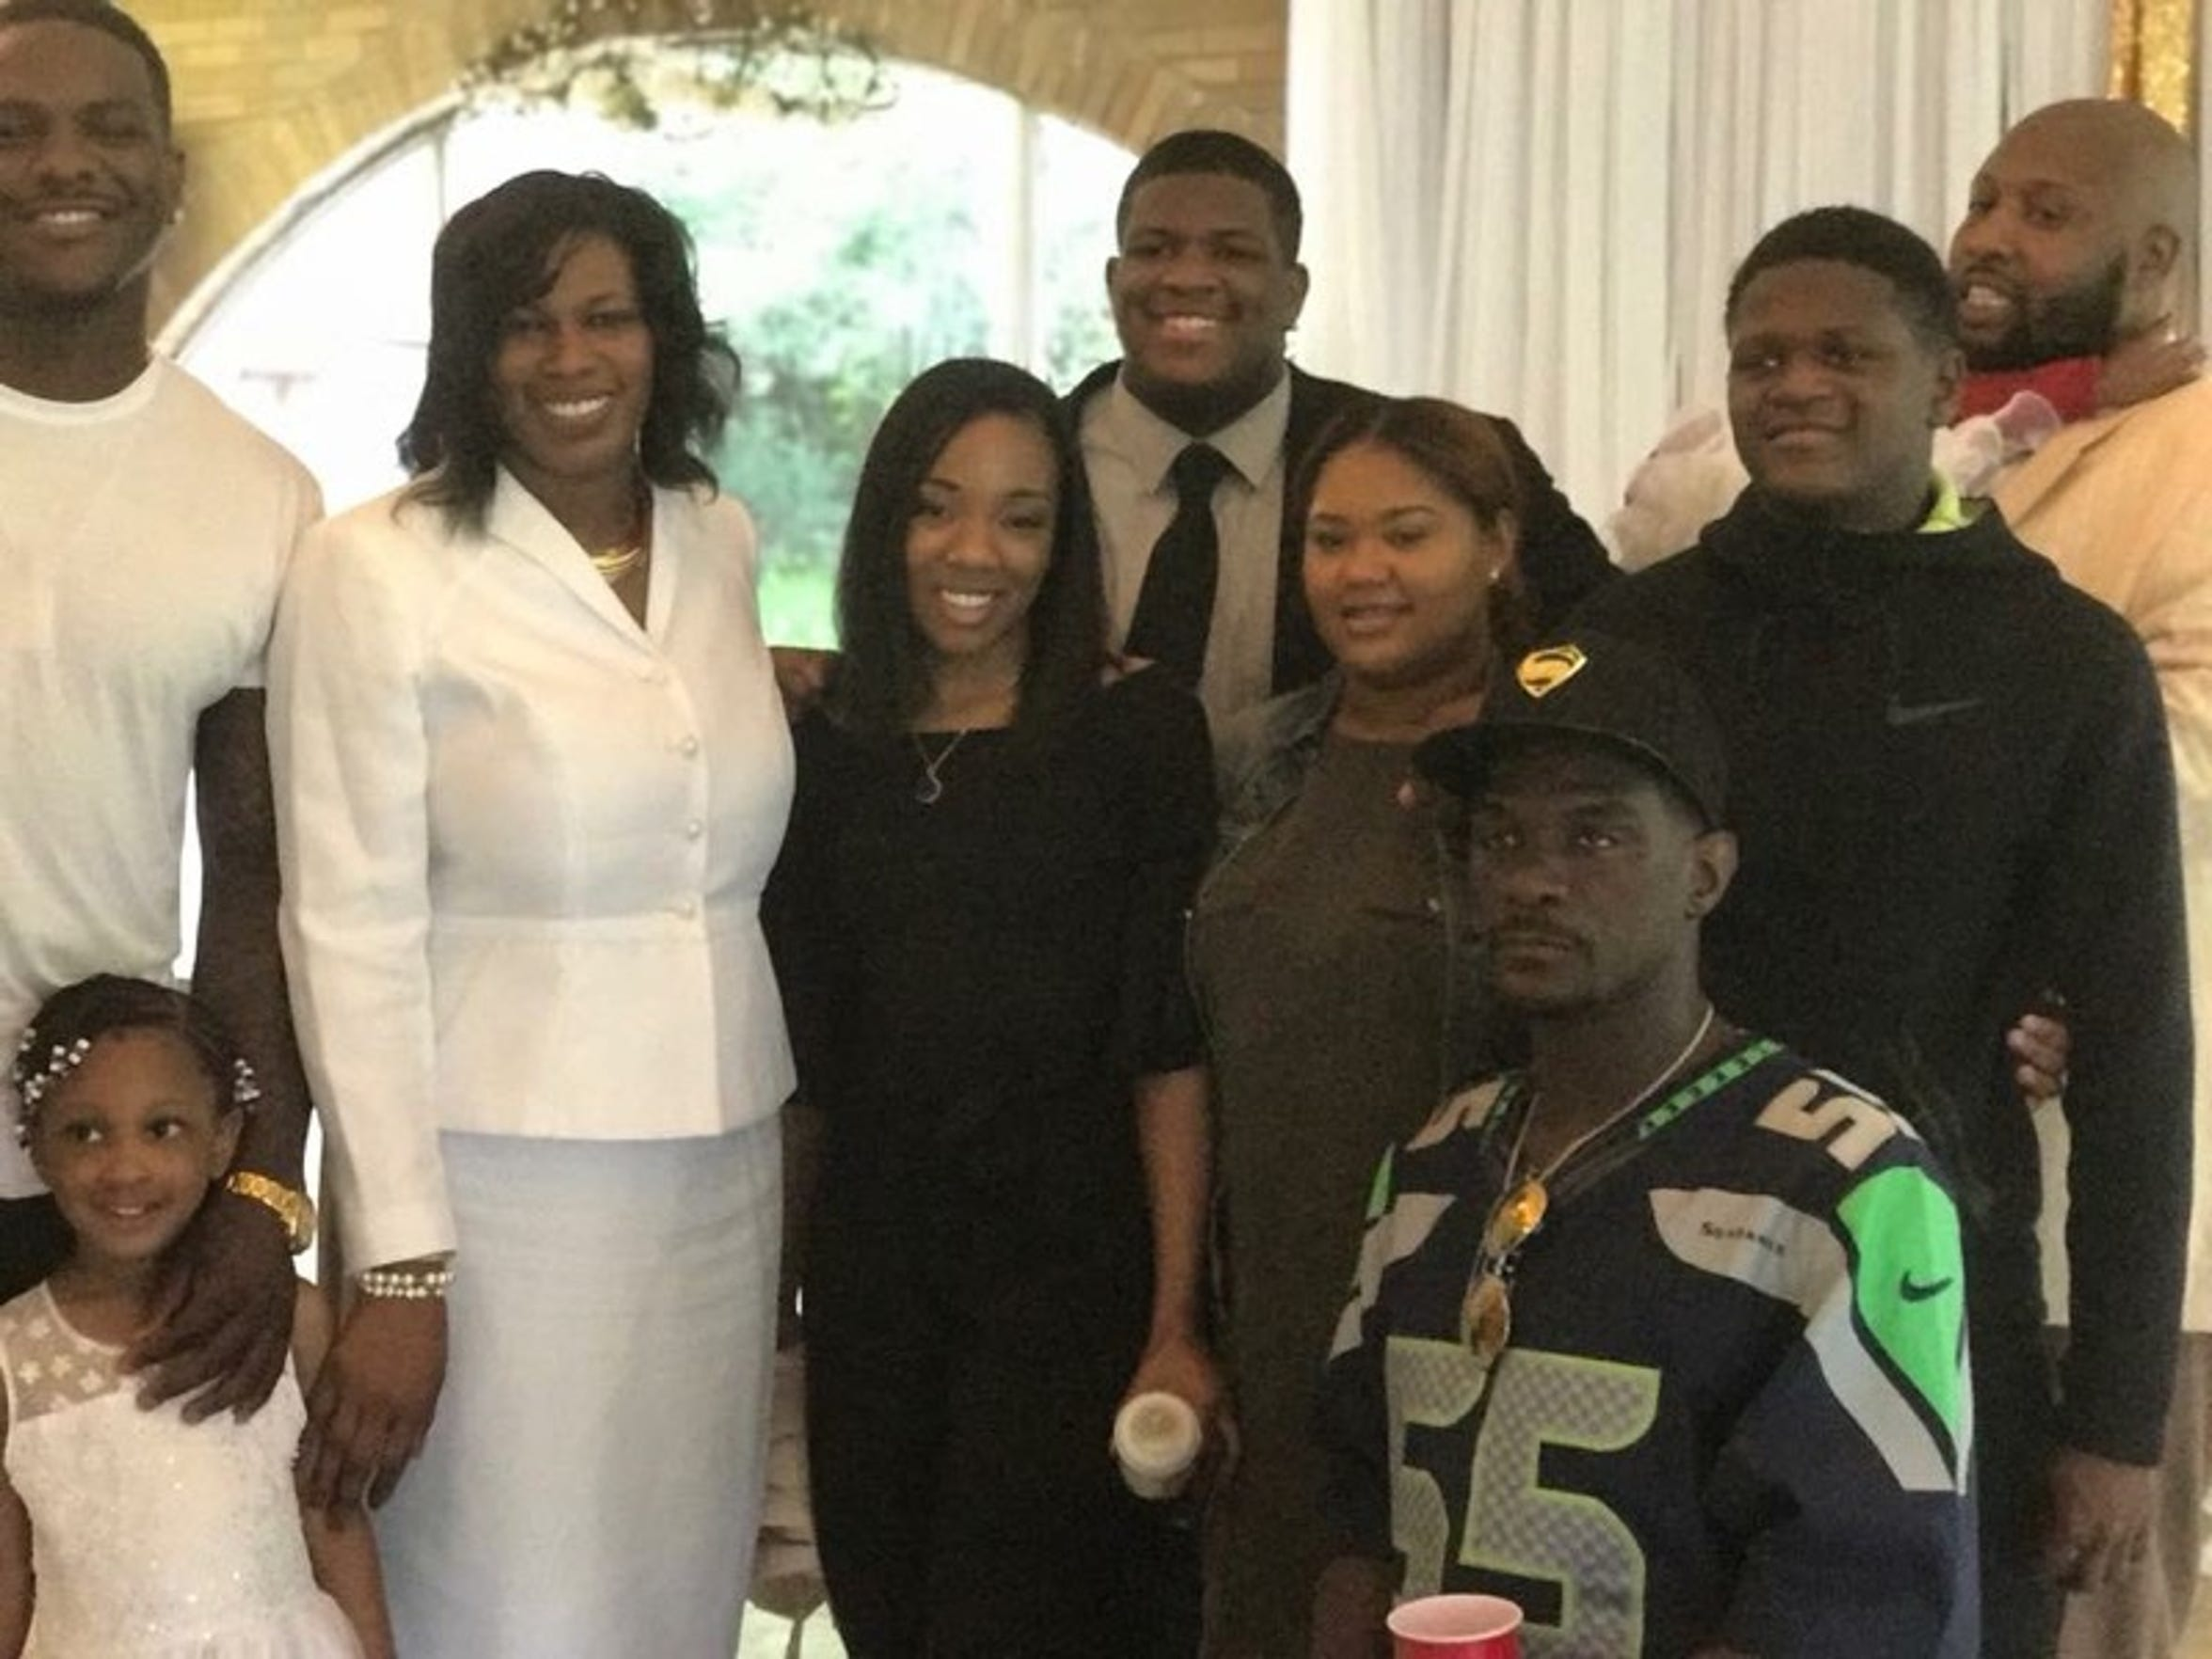 Frank Clark III (bottom right) poses in his son's Seattle Seahawks jersey (Frank Clark, left) while taking a photo with his family.